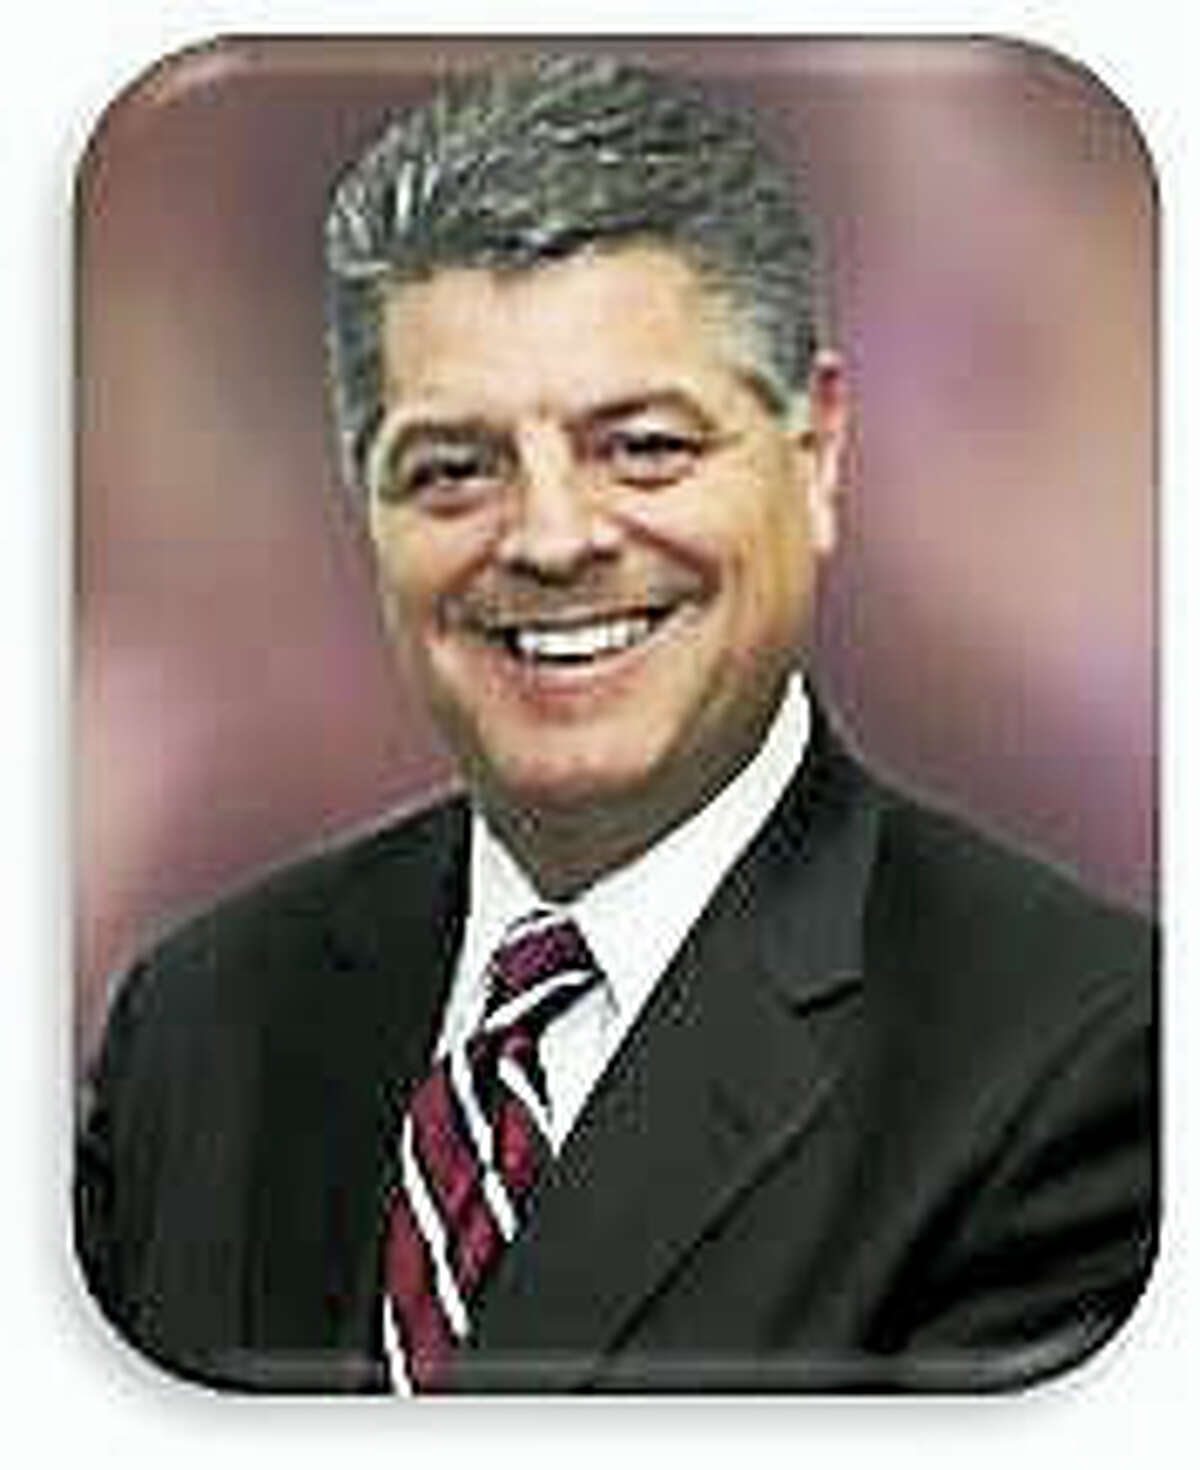 Len Matteo, of EDGE Technology Service, is among this year's 2017 Elm City Legends awards recipients Len Matteo, of EDGE Technology Service, is among this year's 2017 Elm City Legends awards recipients